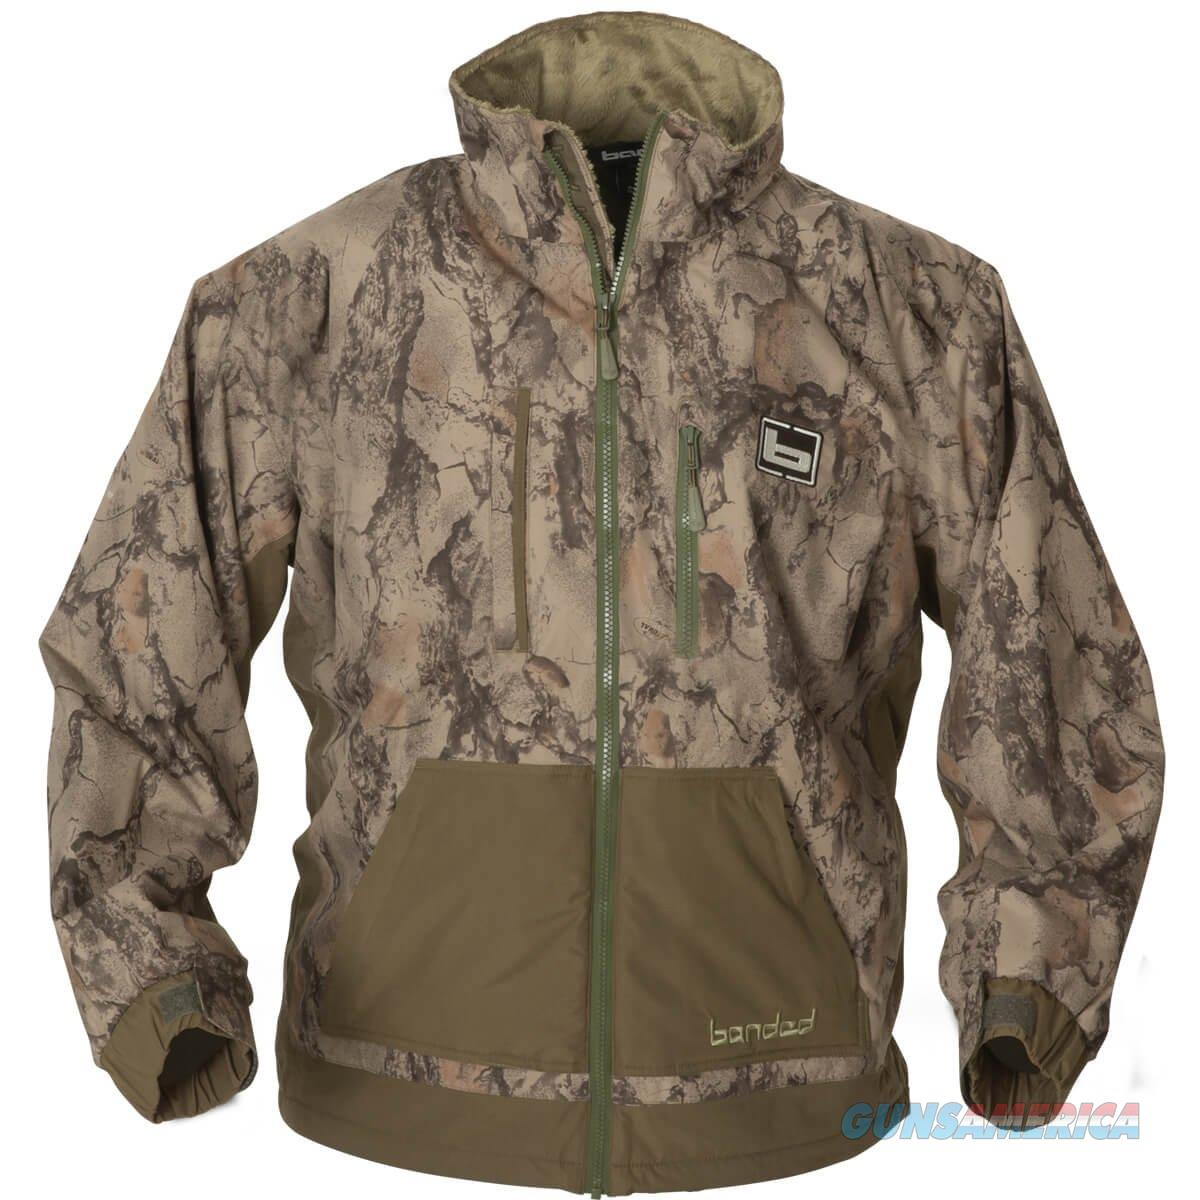 Banded Chesapeake Pullover Nat Gear 2XL  Non-Guns > Shotgun Sports > Vests/Jackets